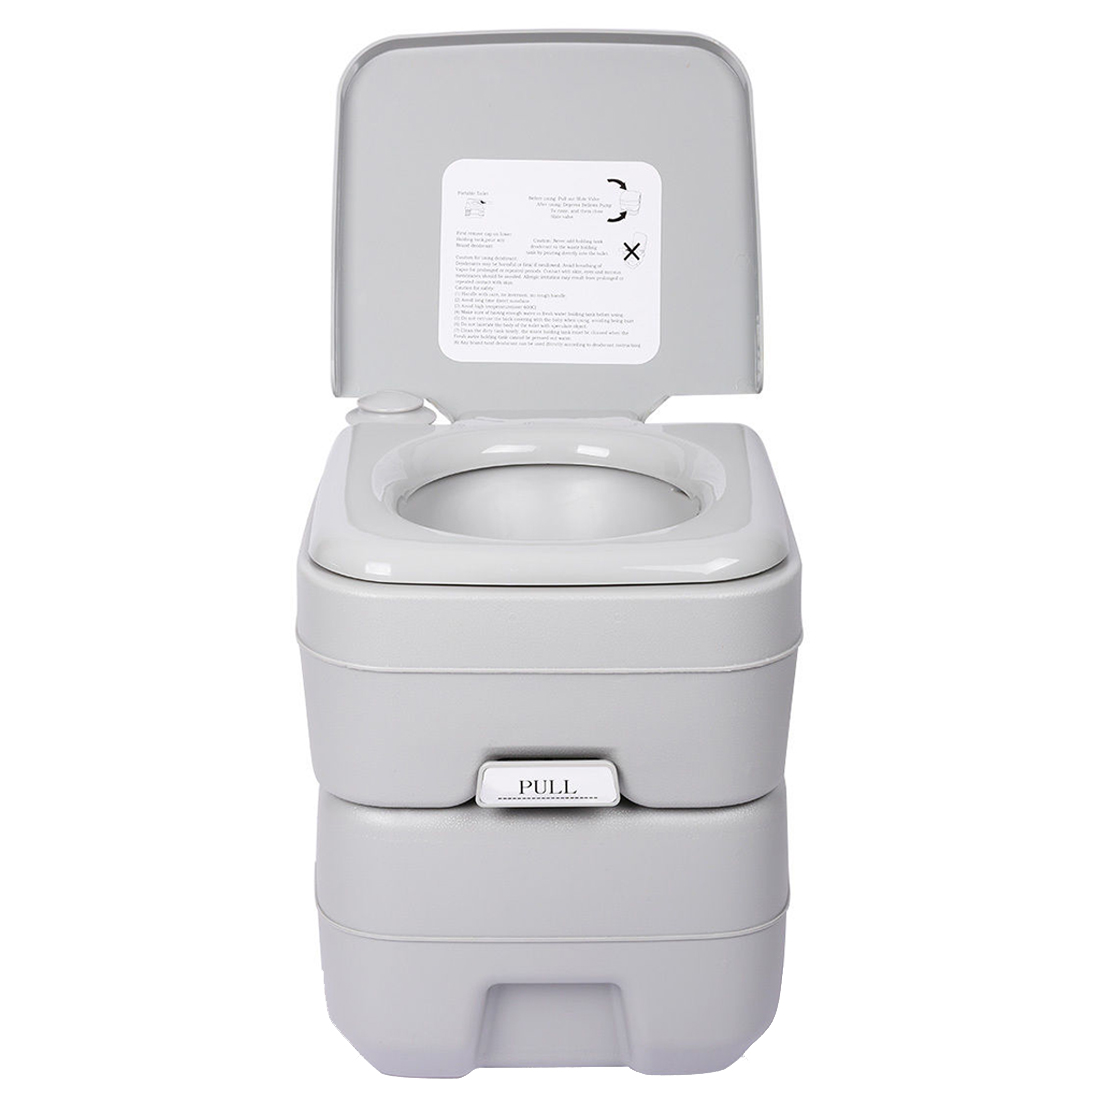 LCLL-5 Gallon 20L Portable WC Toilet Flush Camping Porta Travel Outdoor Hiking Potty brand 24l portable mobile toilet potty seat car loo caravan commode for camping hiking outdoor portable camping toilet